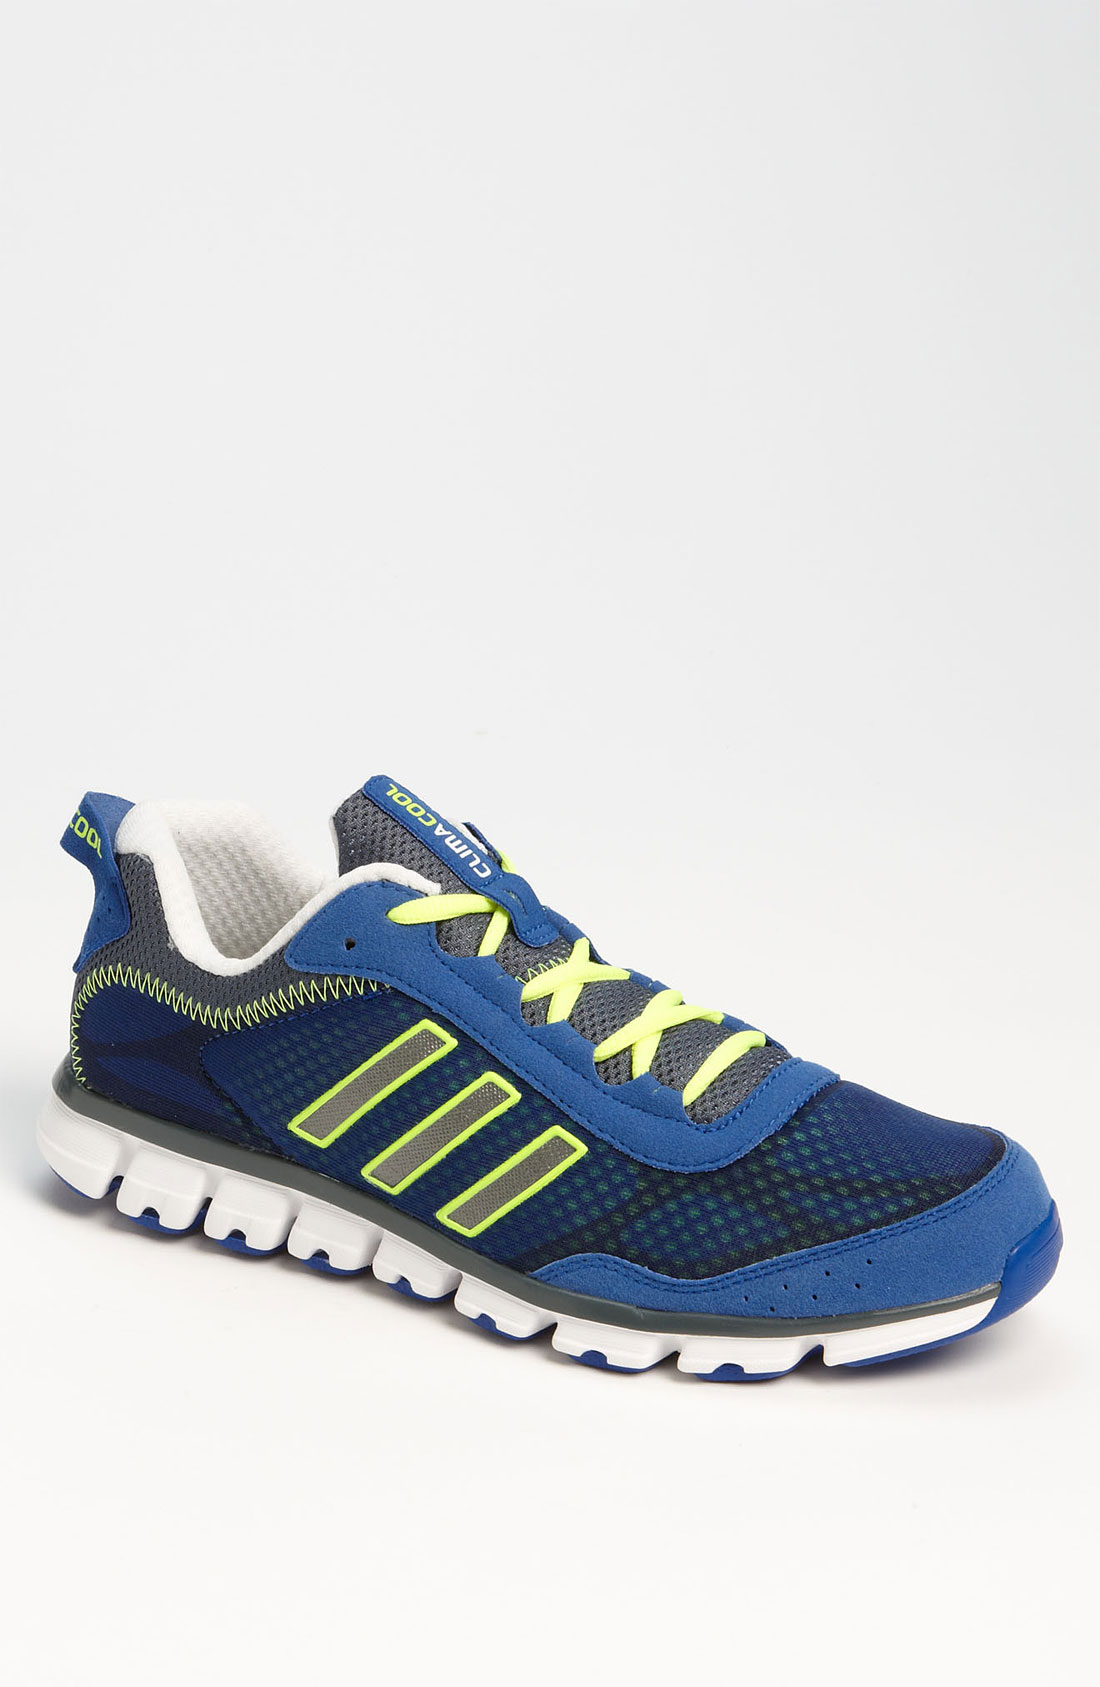 adidas climacool aerate running shoe in blue for men lyst. Black Bedroom Furniture Sets. Home Design Ideas